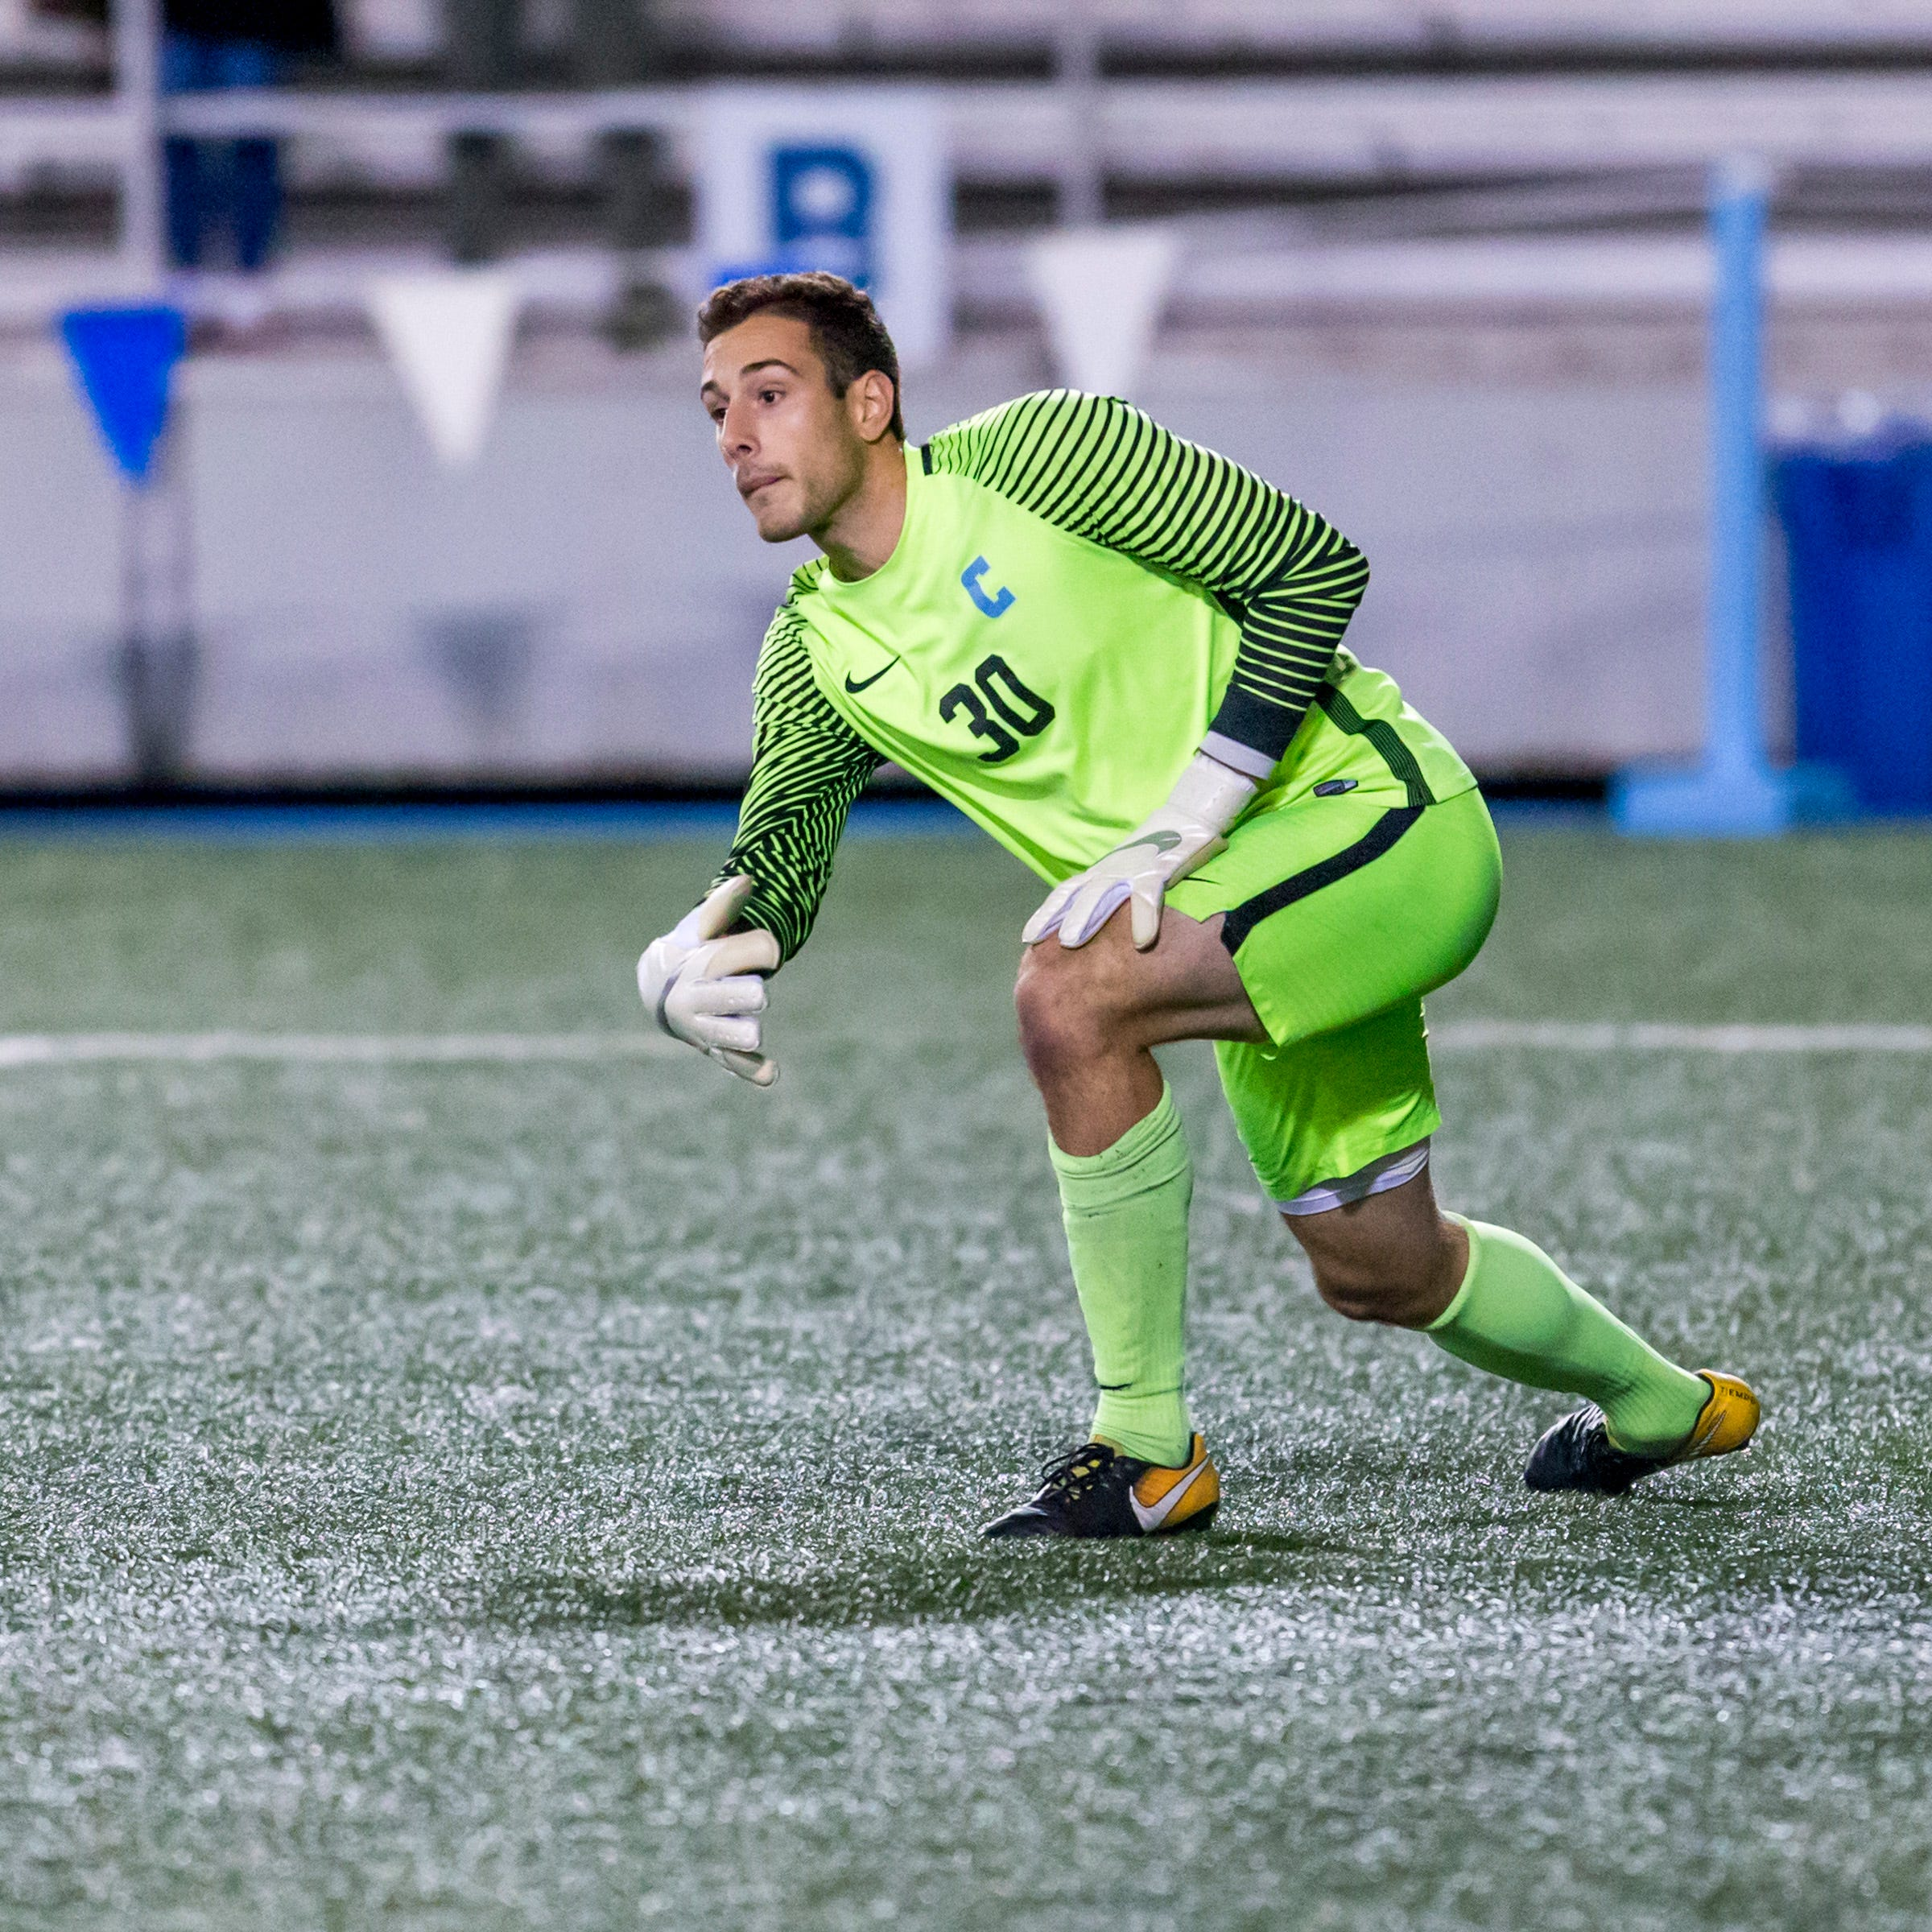 Former Roxbury goalkeeper moving to pro soccer